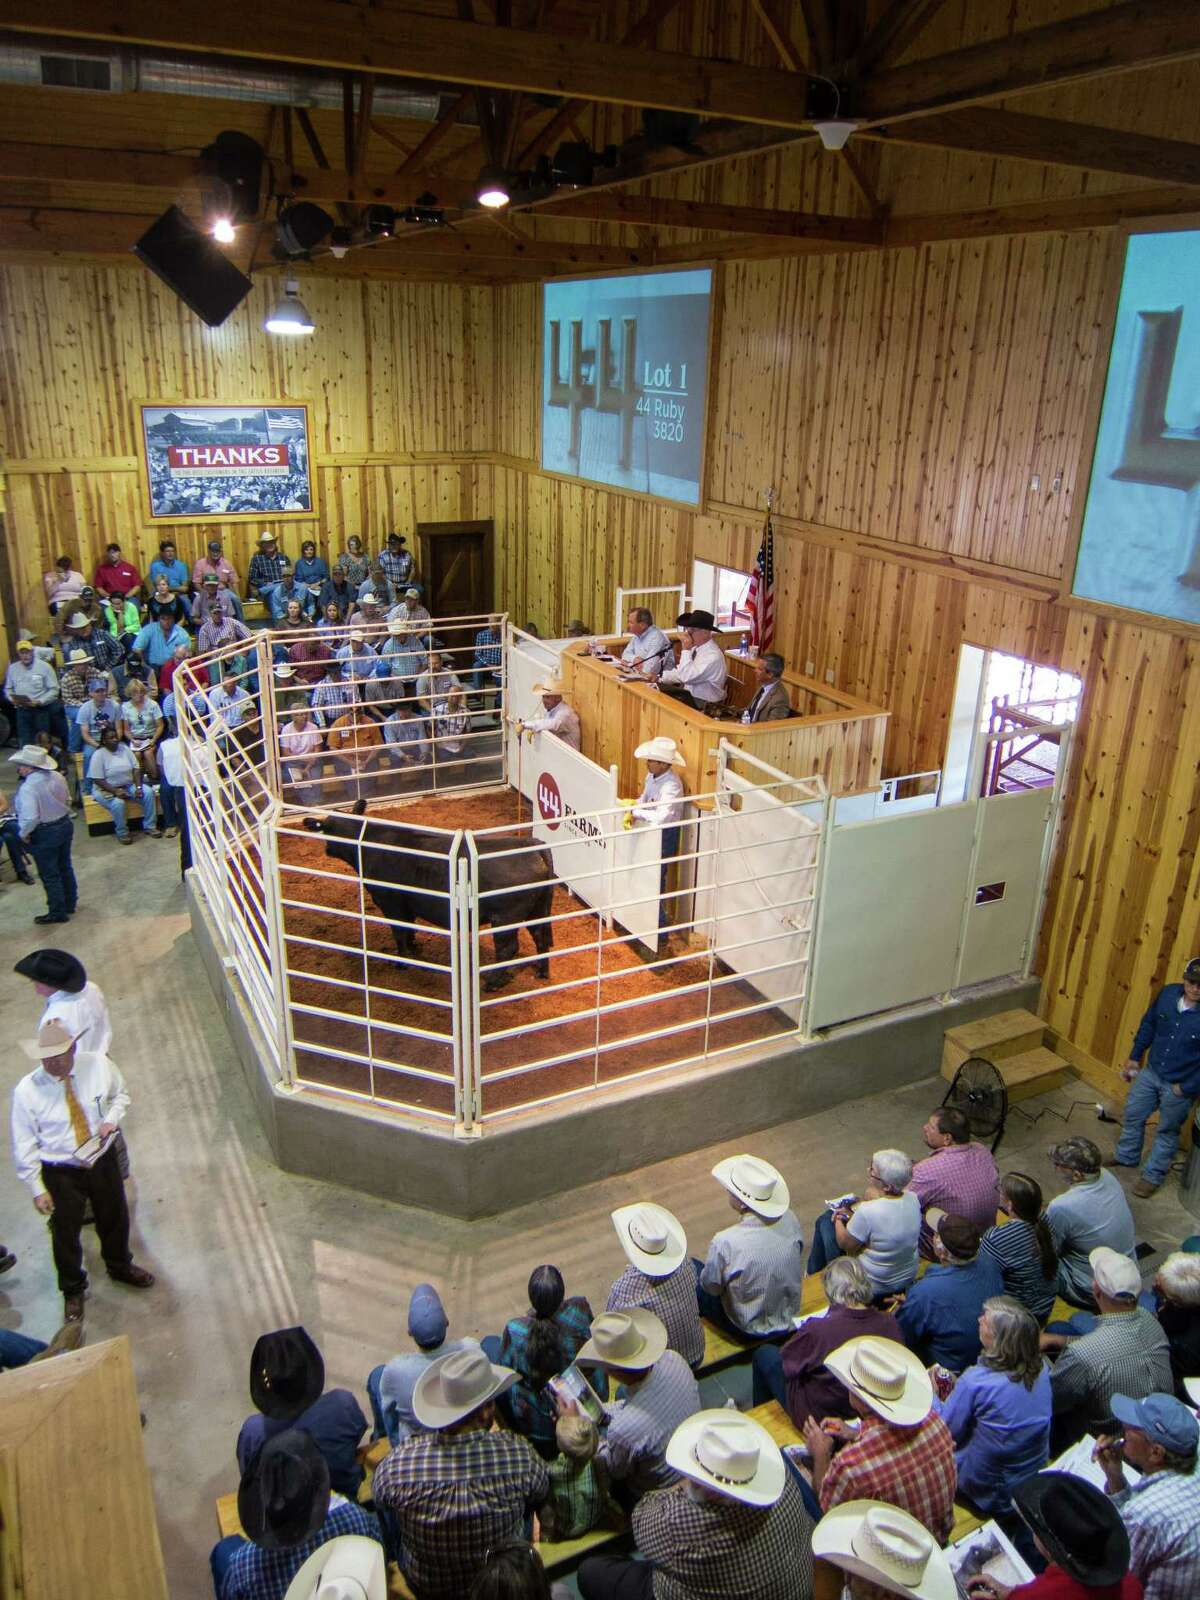 Cattle are auctioned at 44 Farms in central Texas.